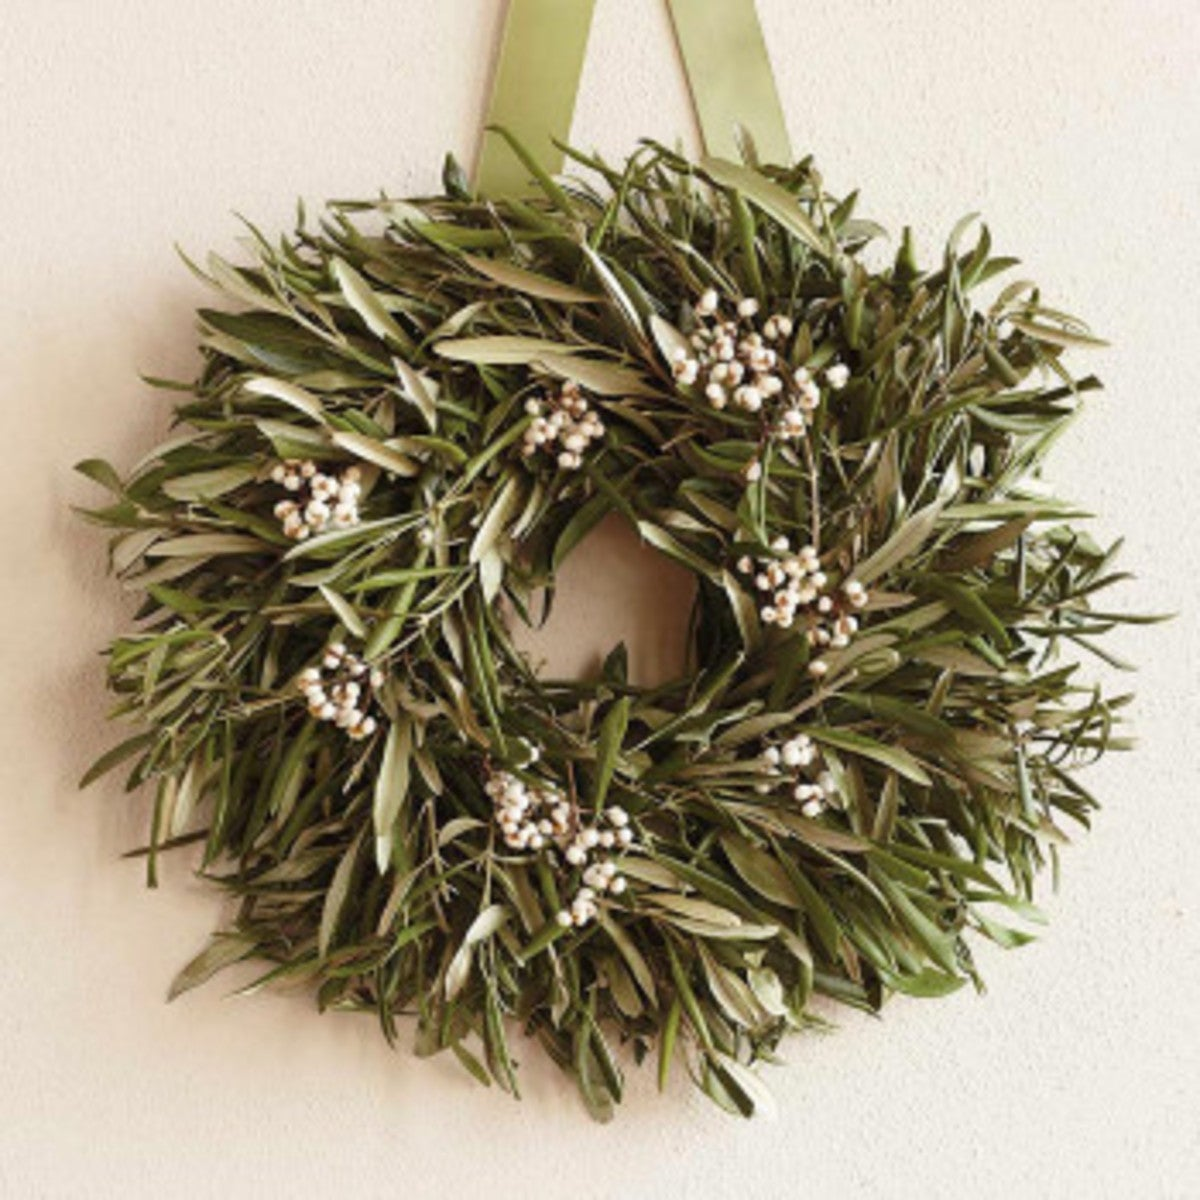 Organic Tallow Berry & Olive Leaf Wreath without Hanger